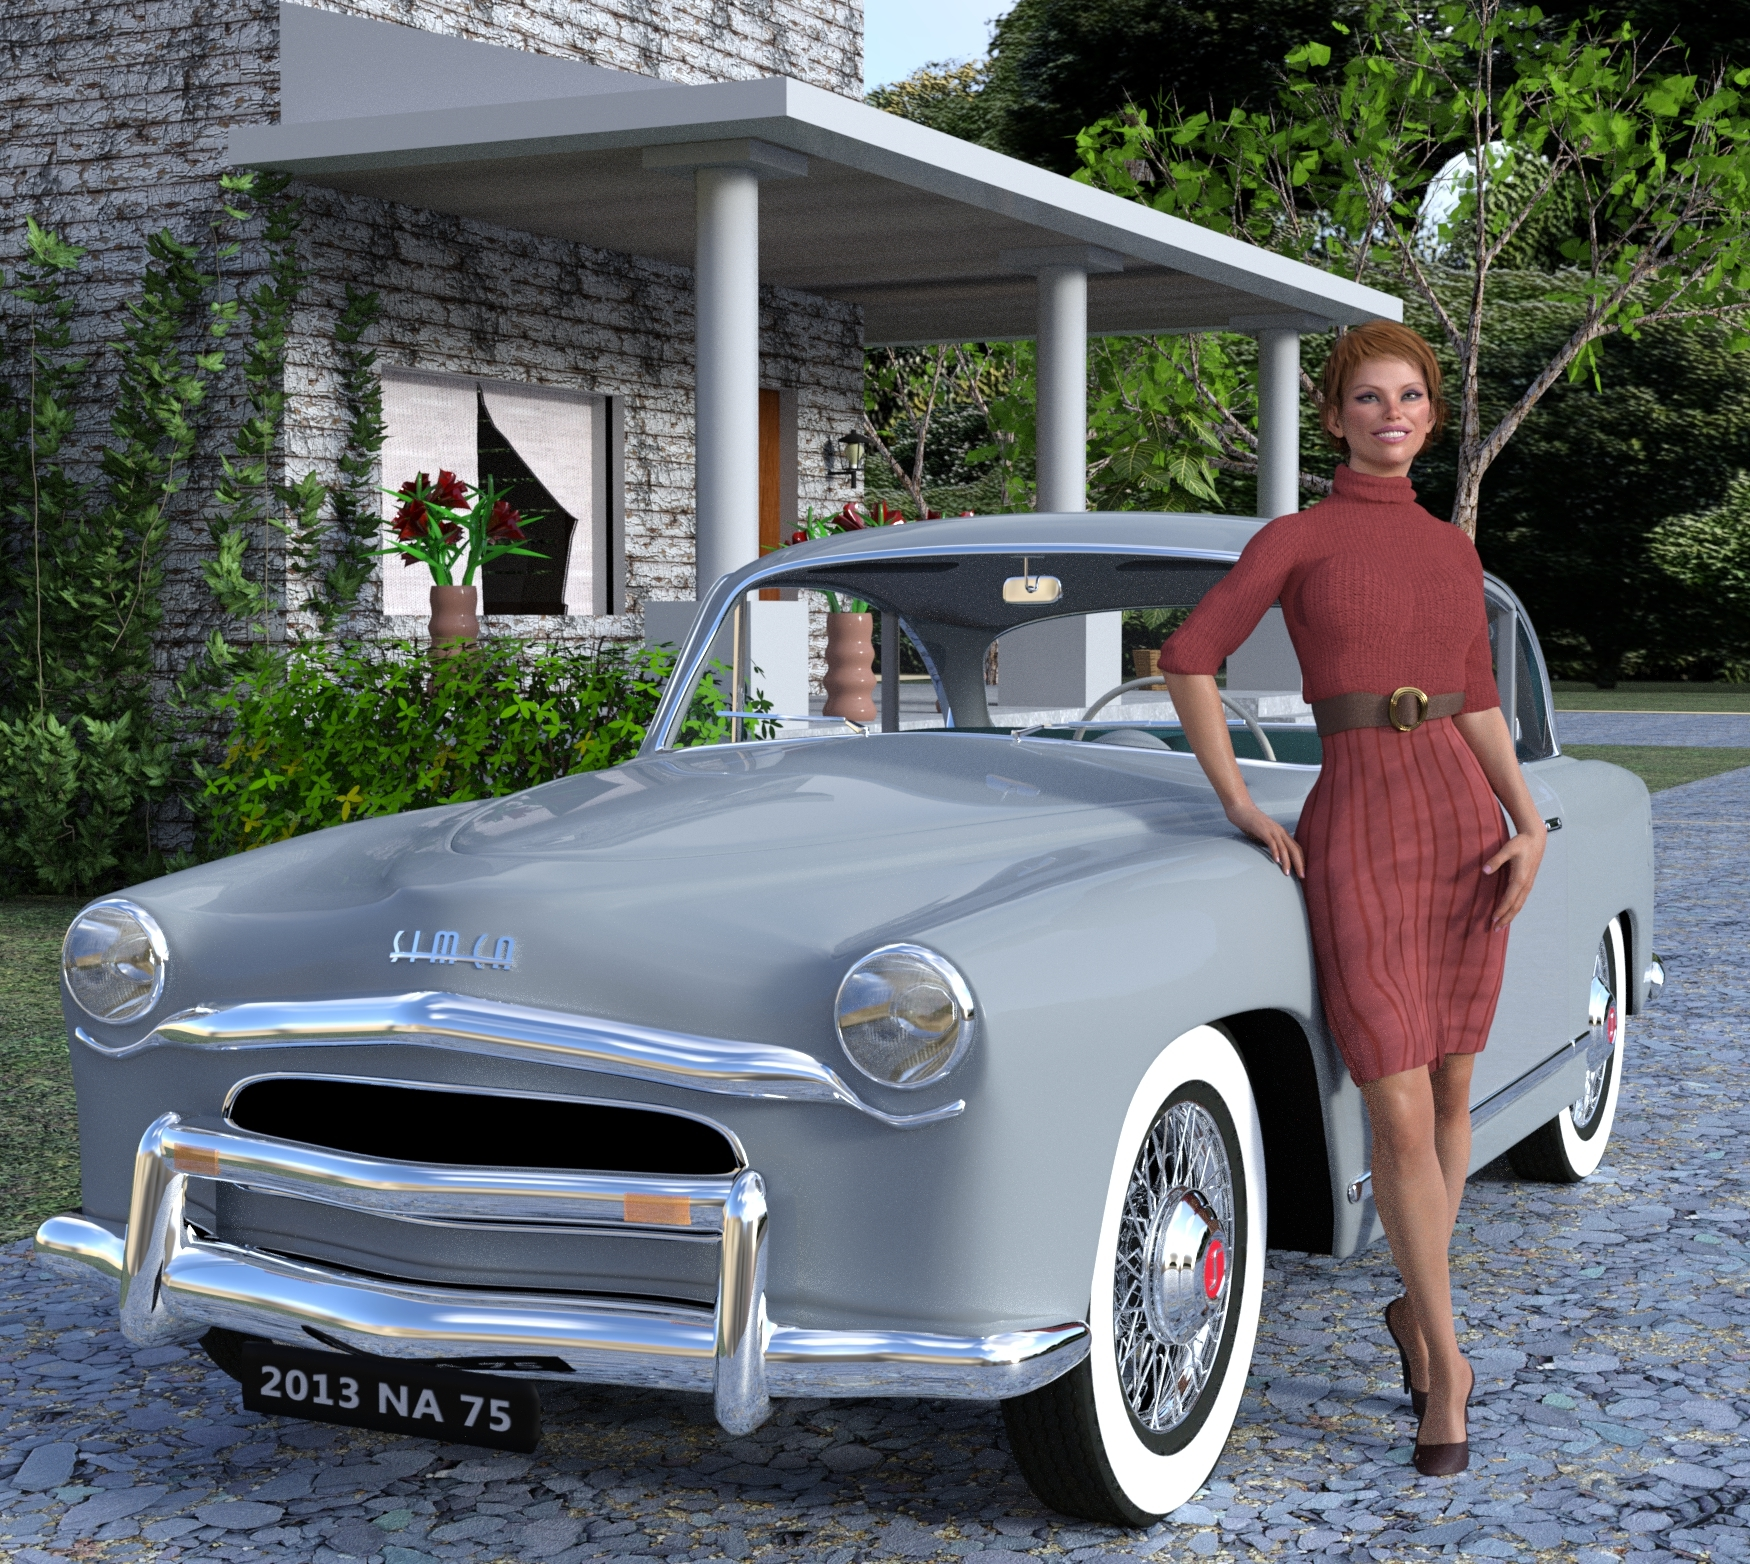 1953 Simca and V8 Inspired by Simca and Bardot